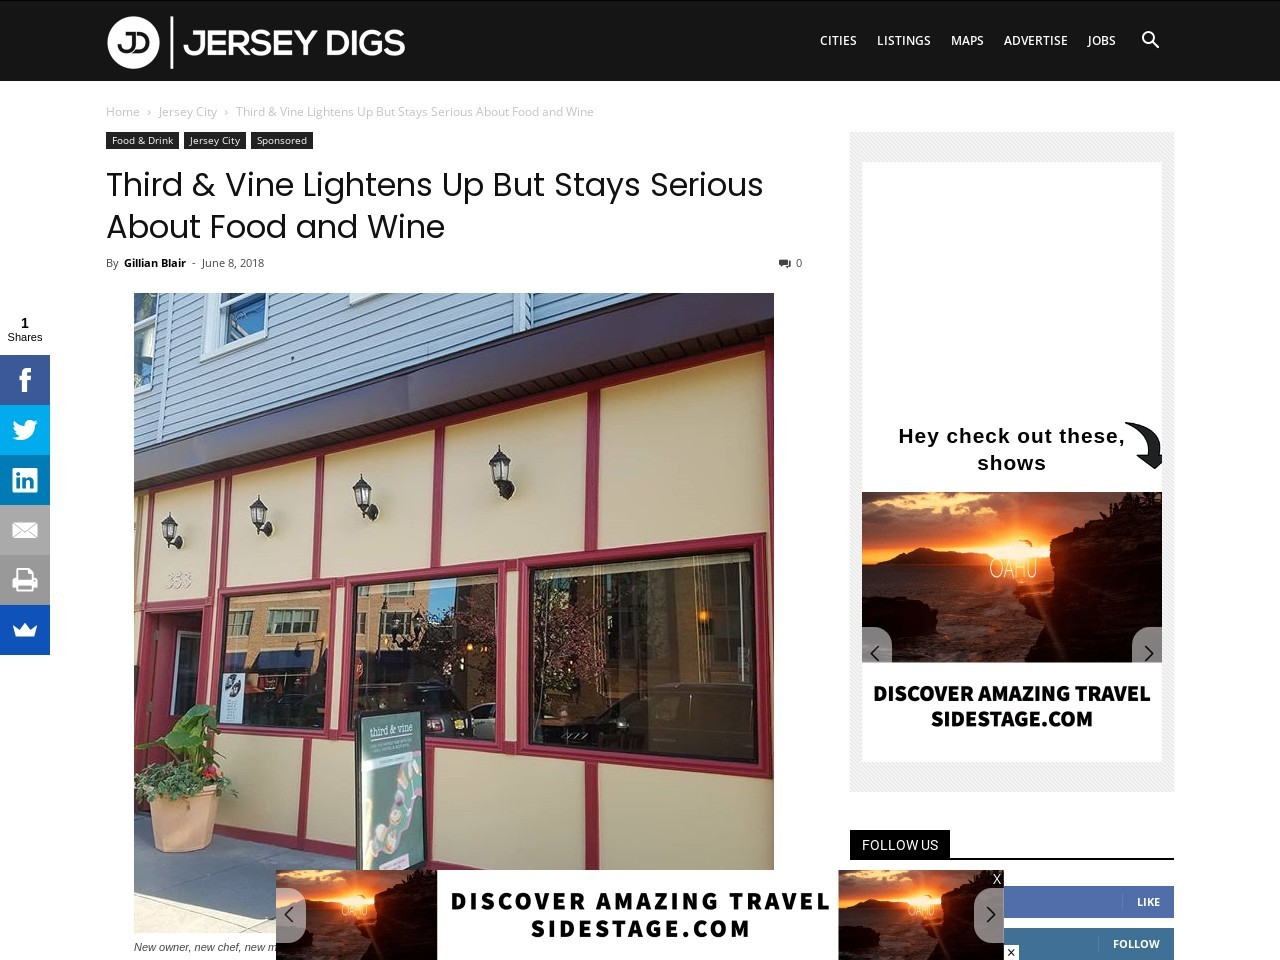 Third & Vine Lightens Up But Stays Serious About Food and Wine